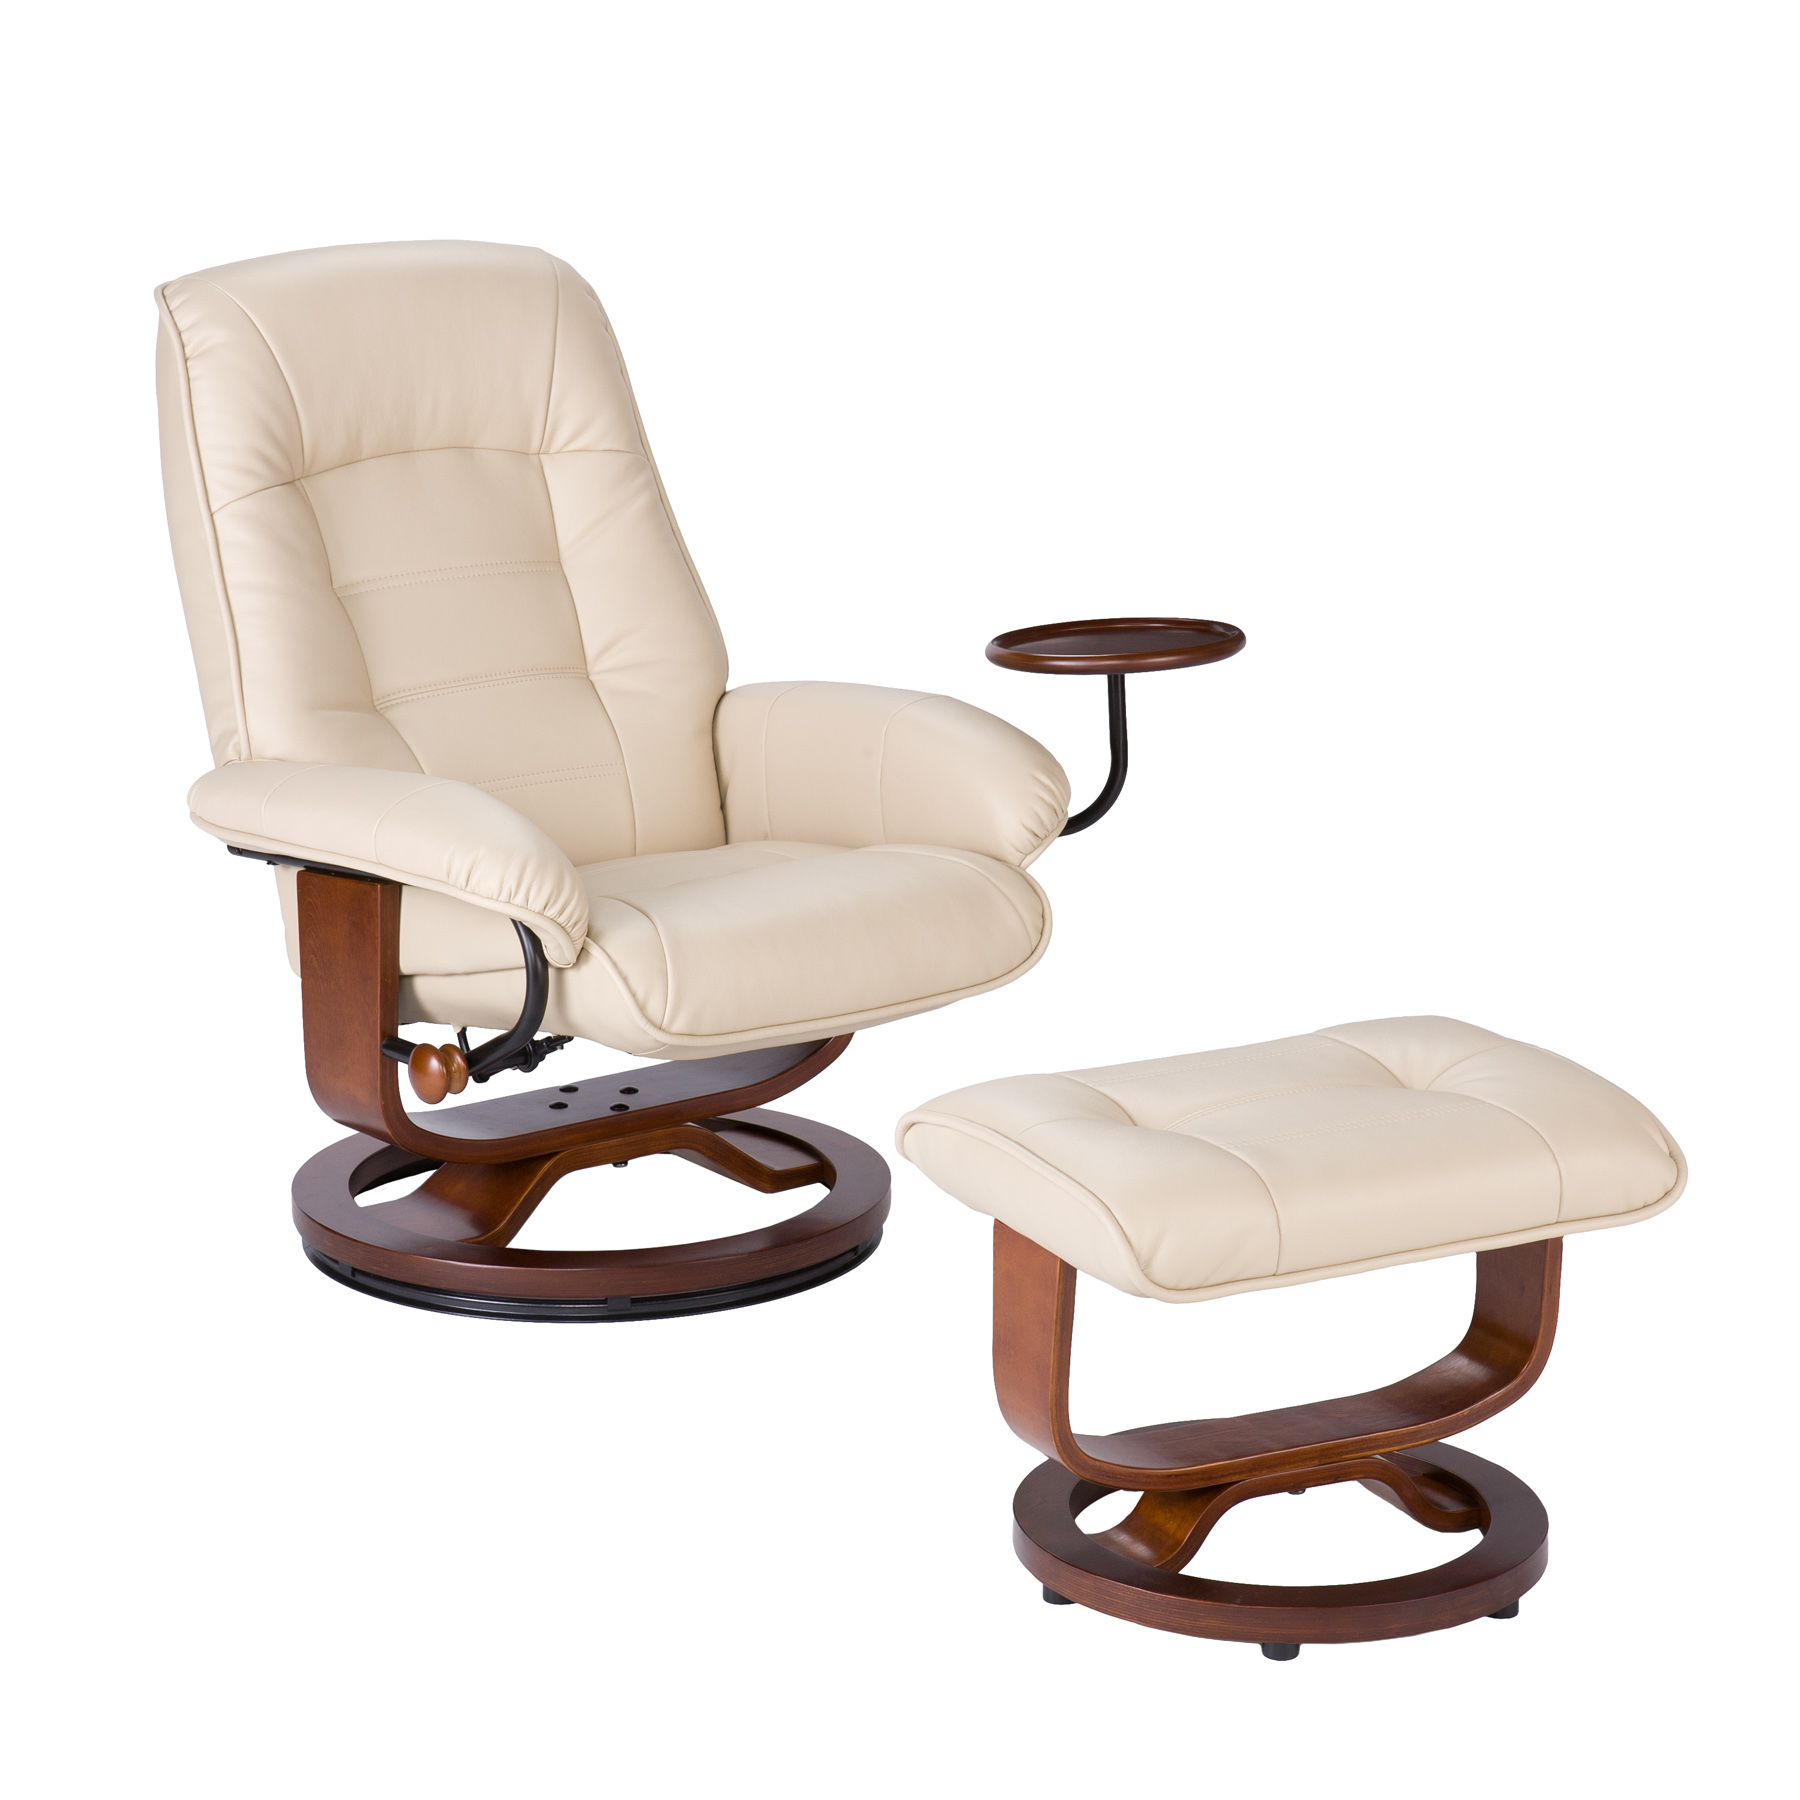 Southern Enterprises Leather Recliner and Ottoman by OJ Commerce $499.99